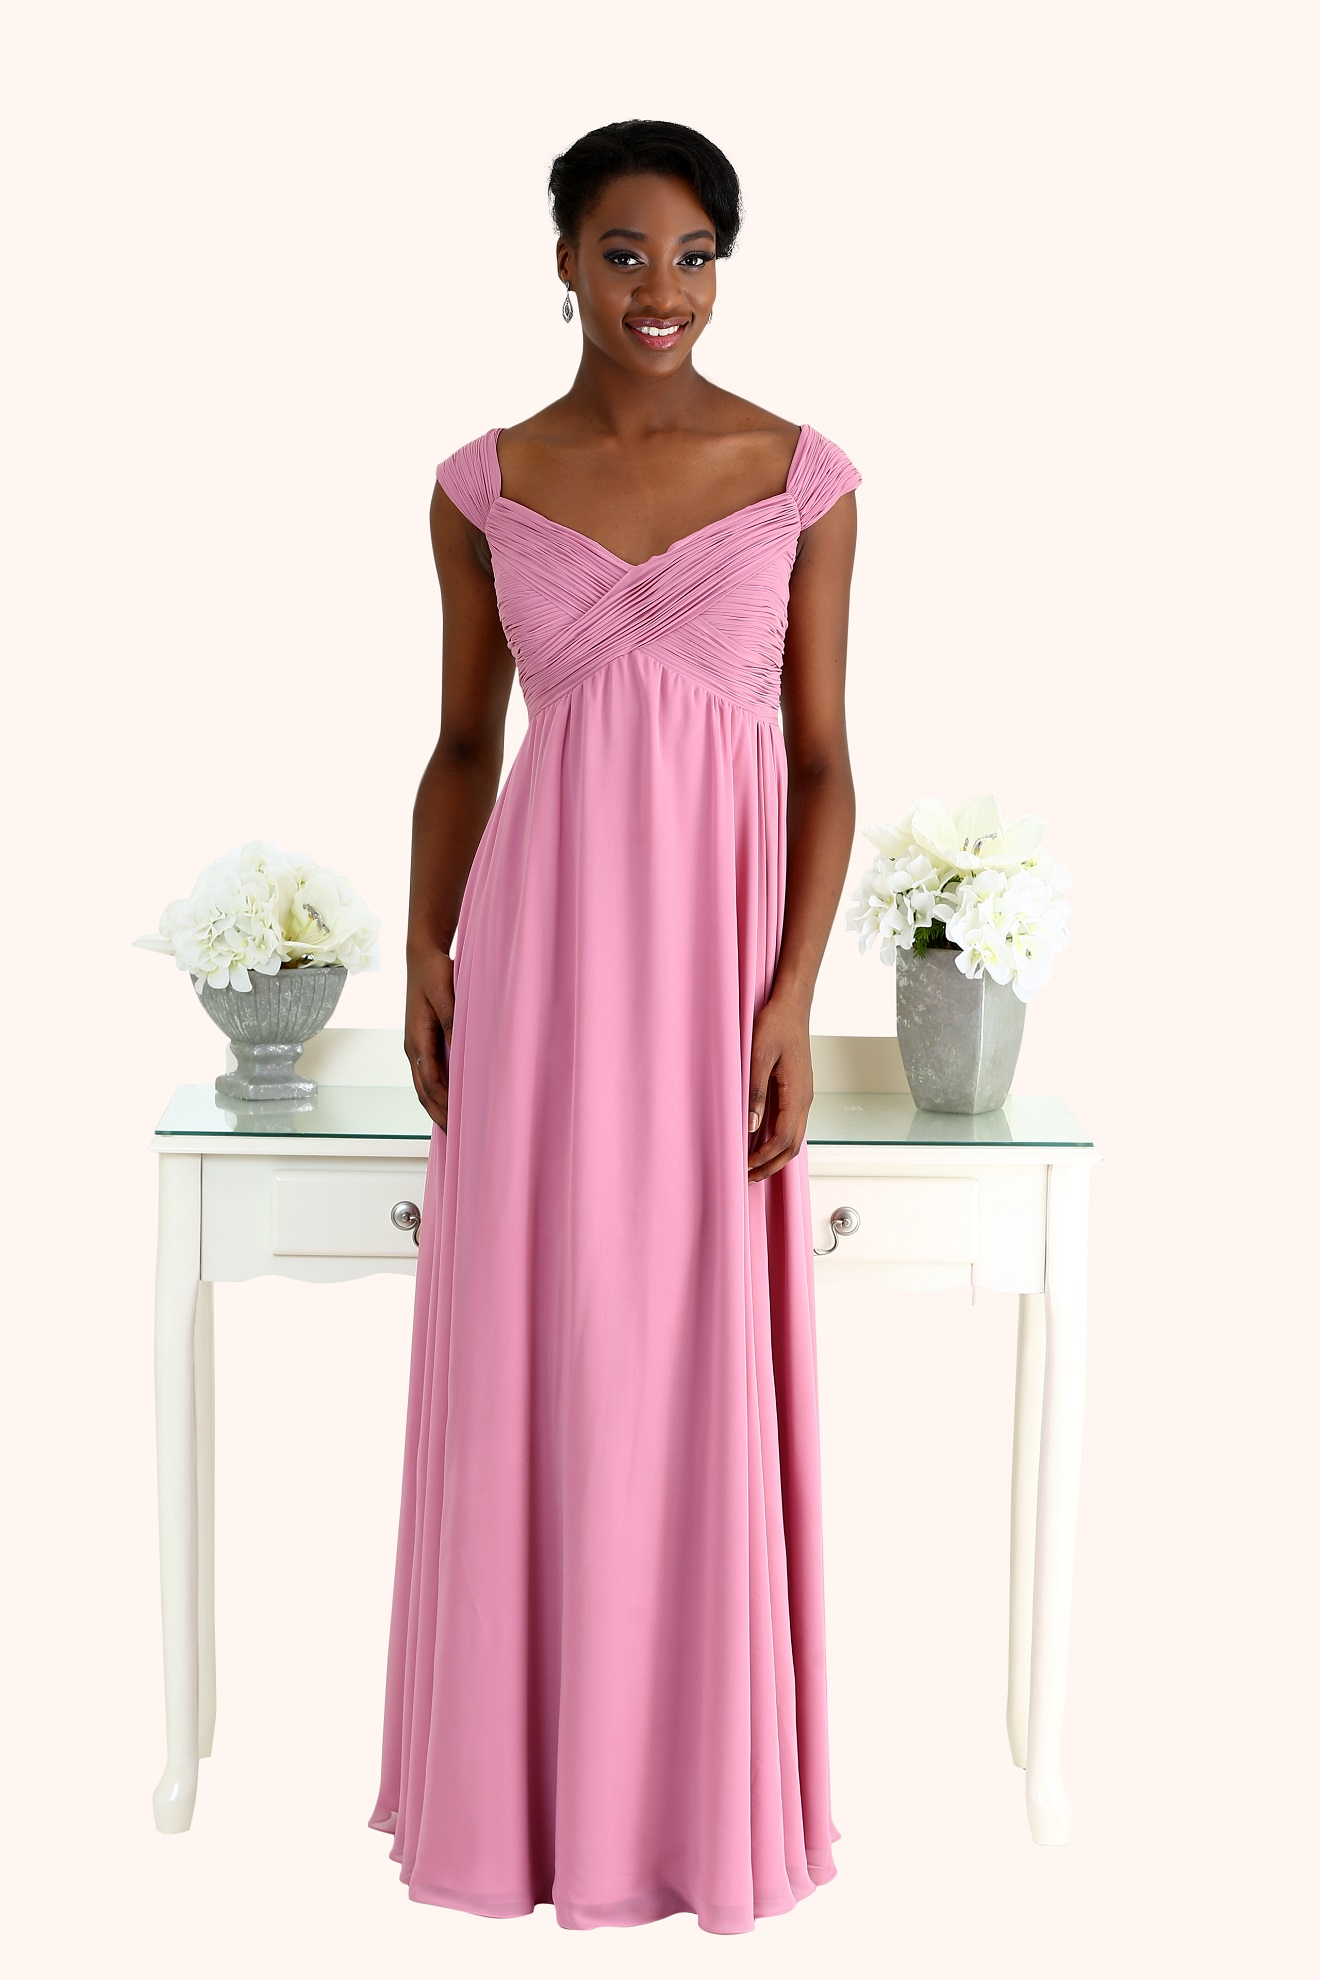 Sophia chiffon empire waist bridesmaid dress estilo moda bridesmaid dresses milton keynes sophia ruched chiffon cross over bodice long length straps empire ombrellifo Gallery